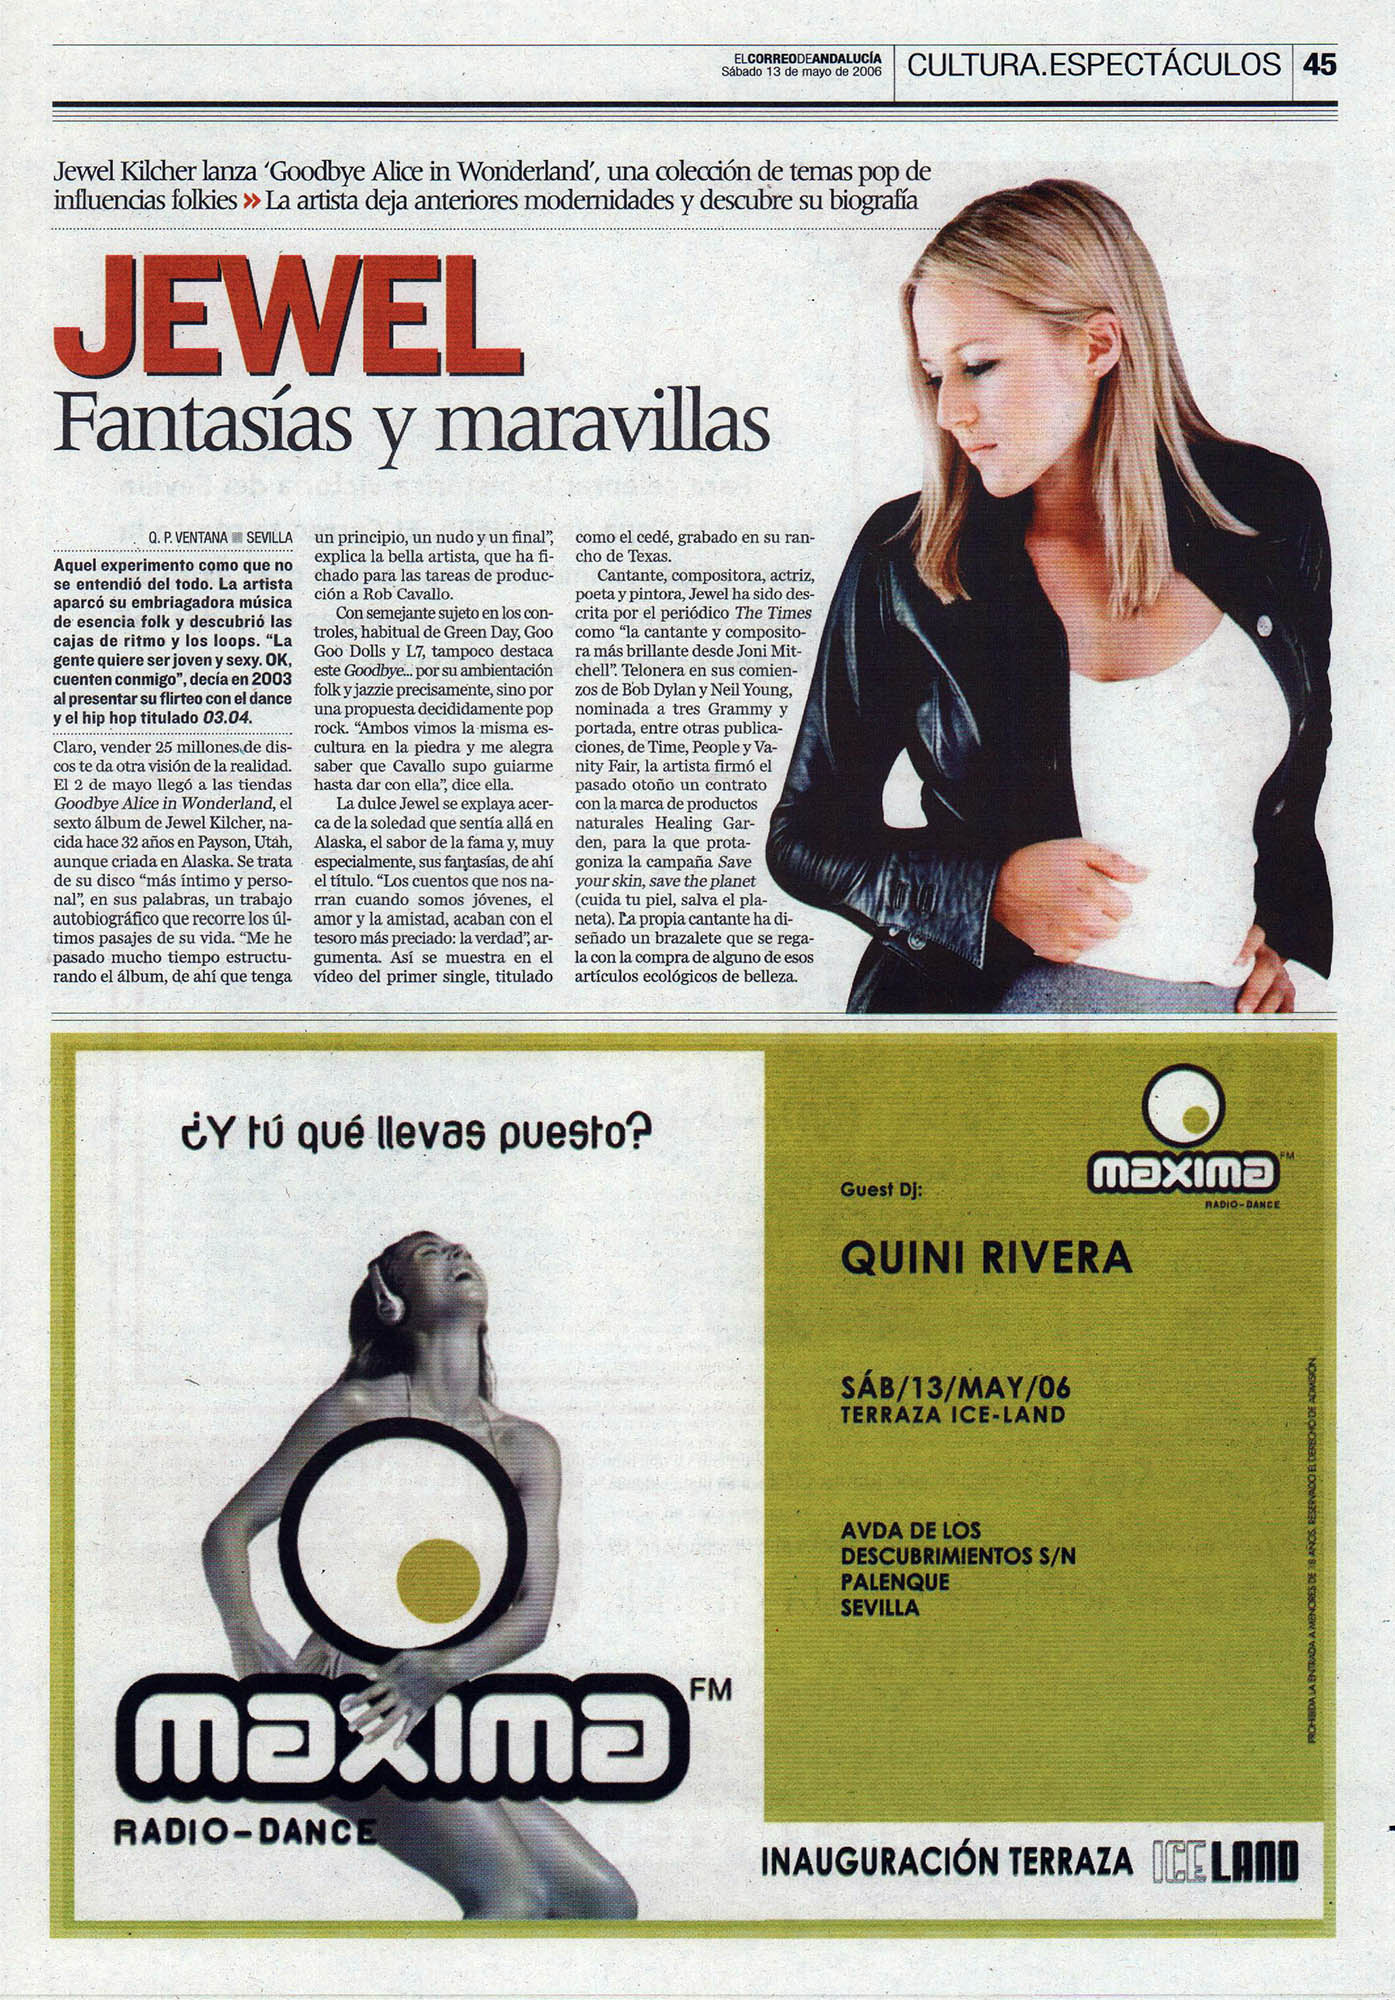 Jewel, fantasías y maravillas – Goodbye Alice in Wonderland | El Correo de Andalucía | 13 may 2006